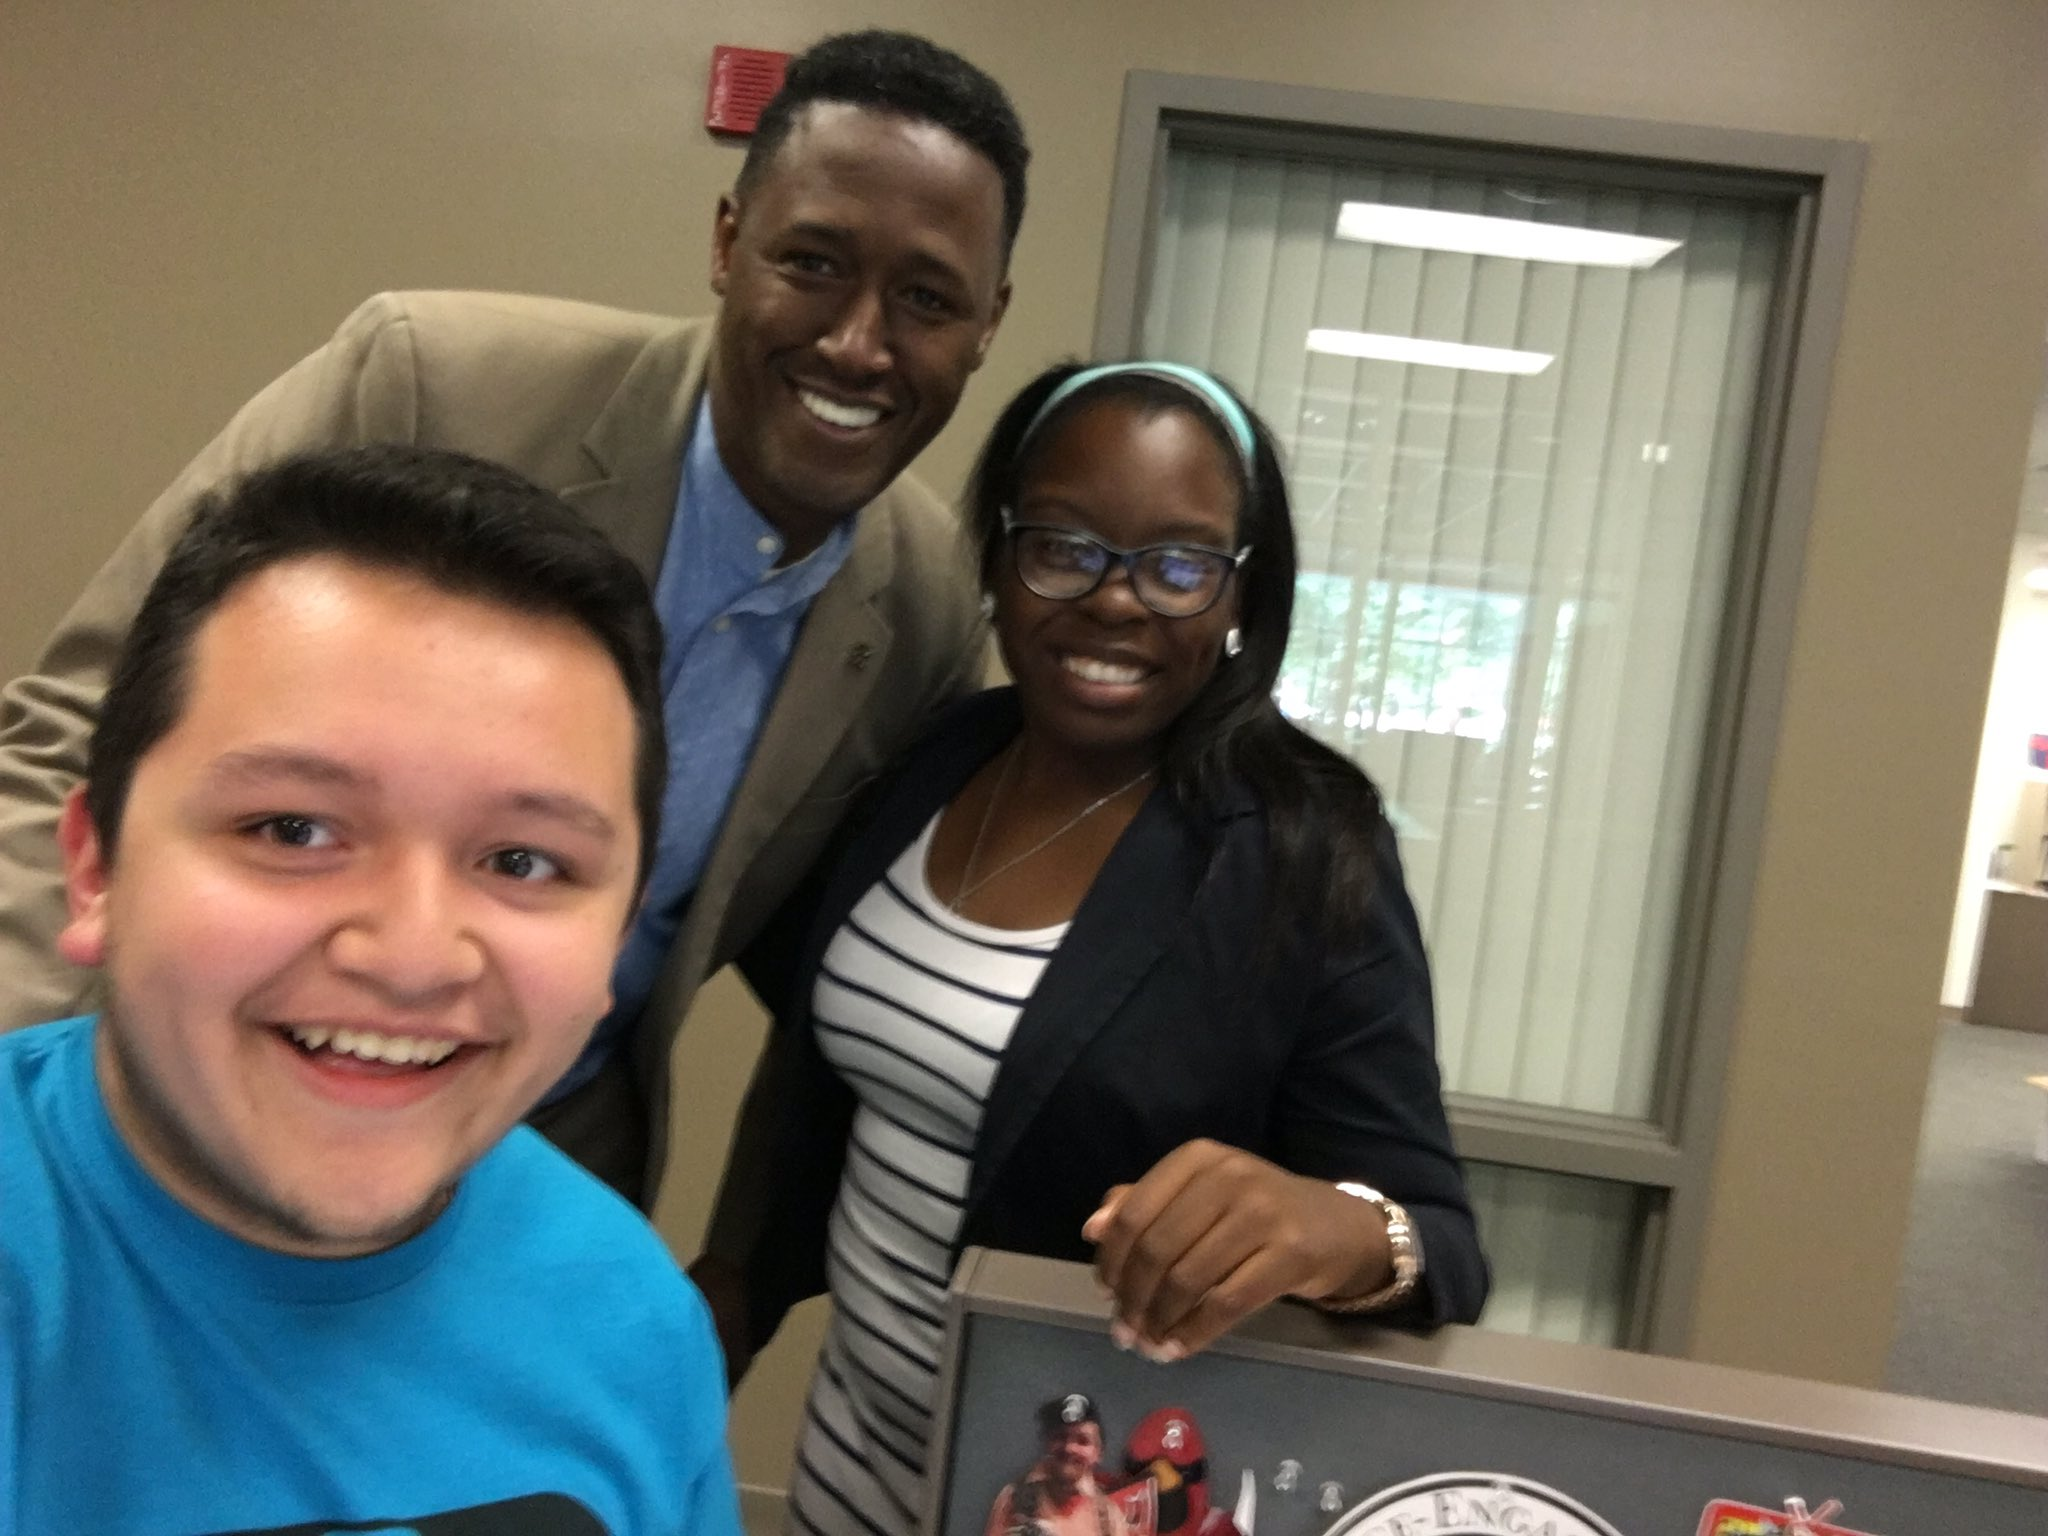 First tweet, first week! Thankful for these two in the Office of Student Affairs! More to come #WeEngage #WeCardinal https://t.co/u0C9mx0SwJ